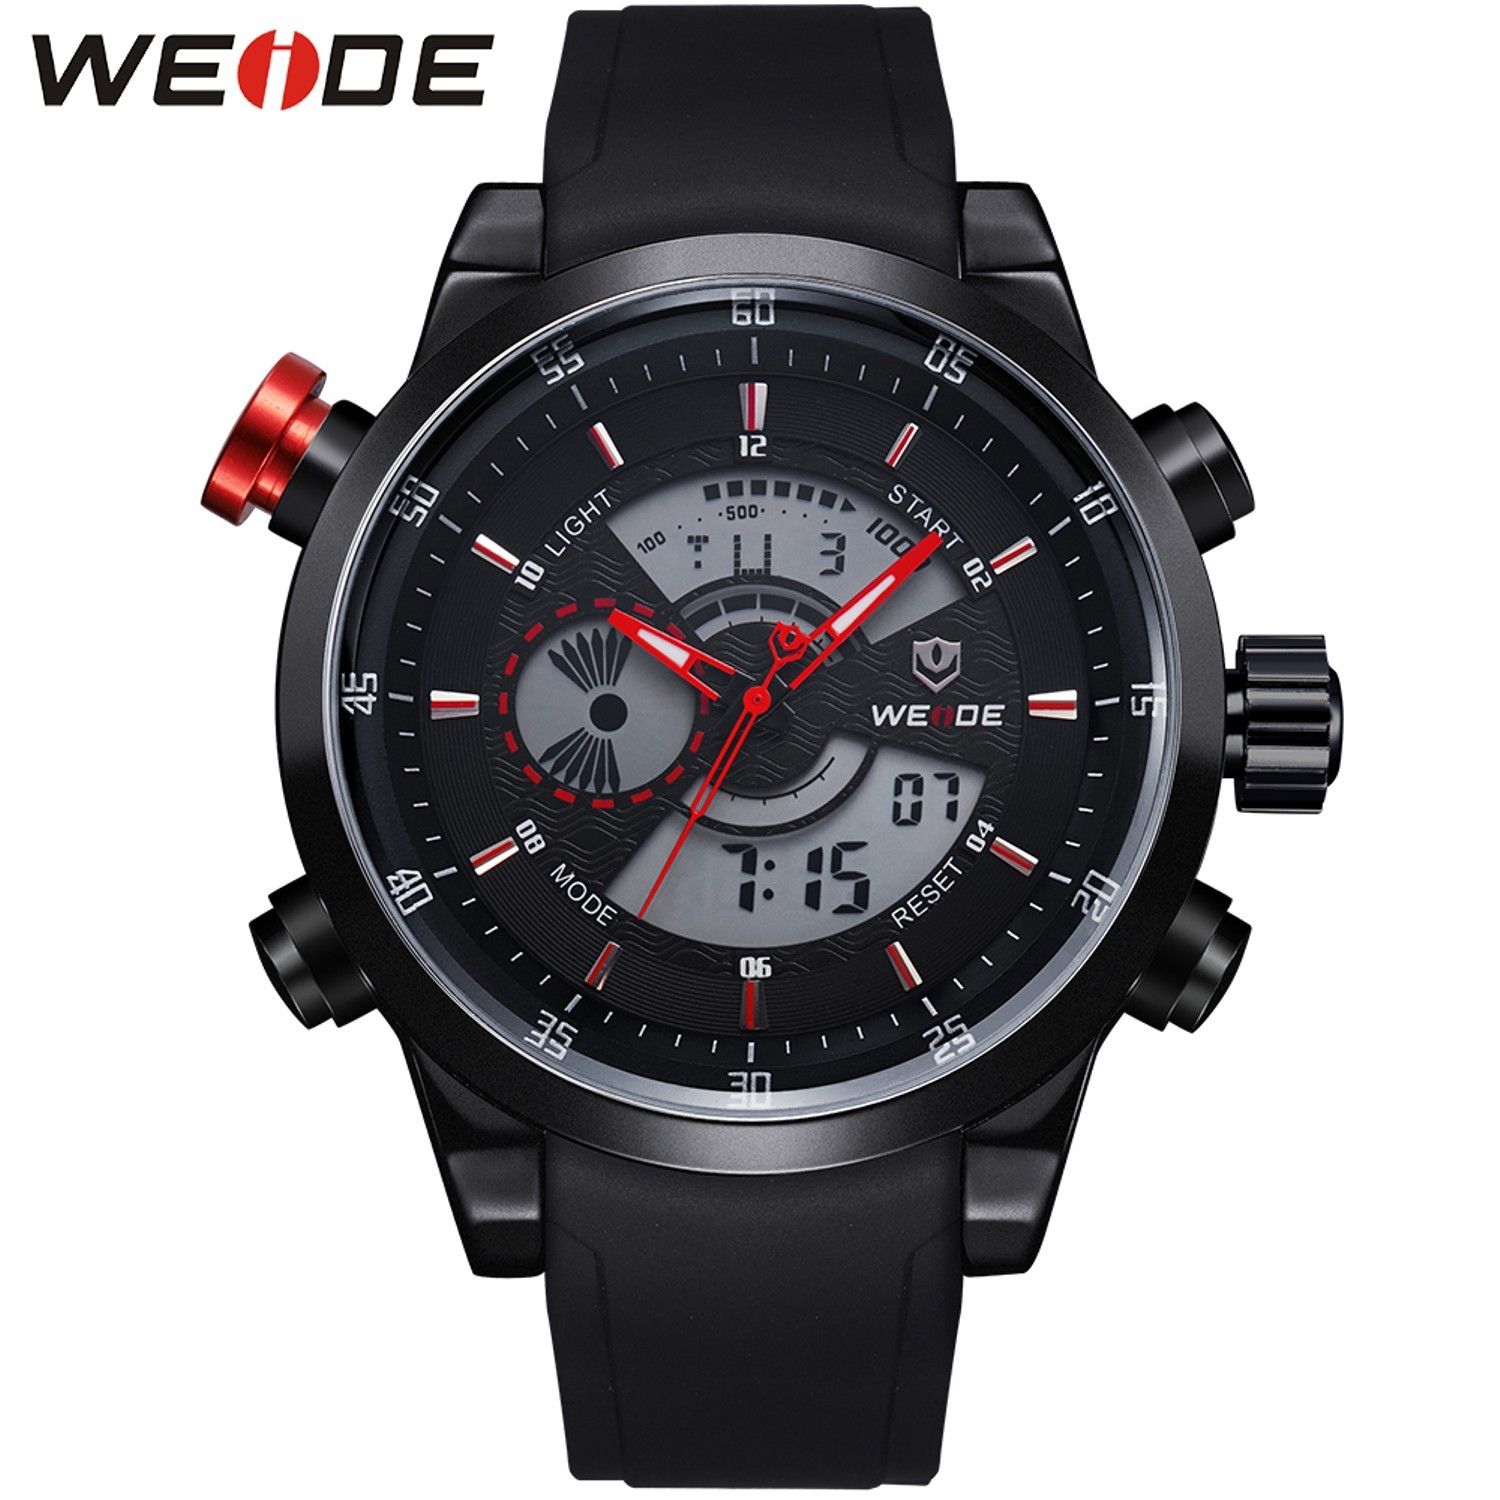 WEIDE-Sports-Date-Analog-Digital-Watch-Men-Quartz-LCD-Movement-Hardlex-Surface-Black-PU-Wrist-Strap_1500x1500_STRETCH_499.jpg